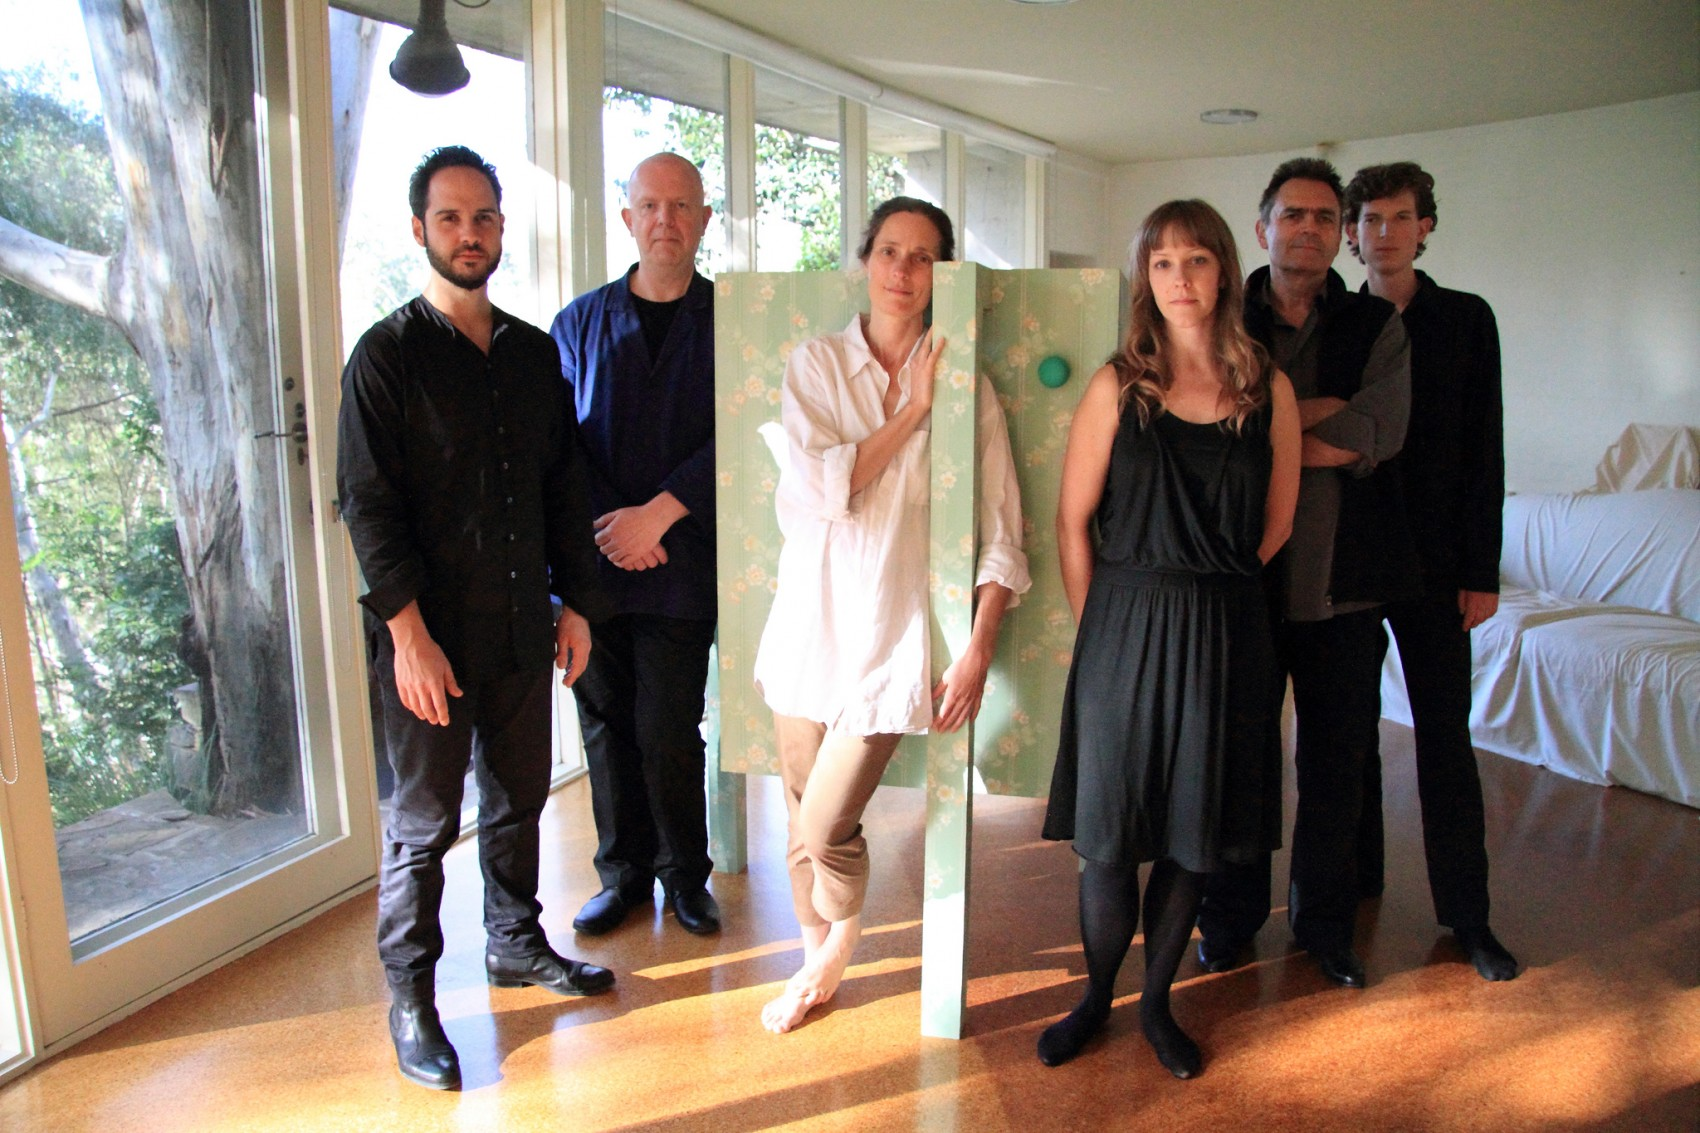 Six people standing in a sunny room around a pale green box on a stand